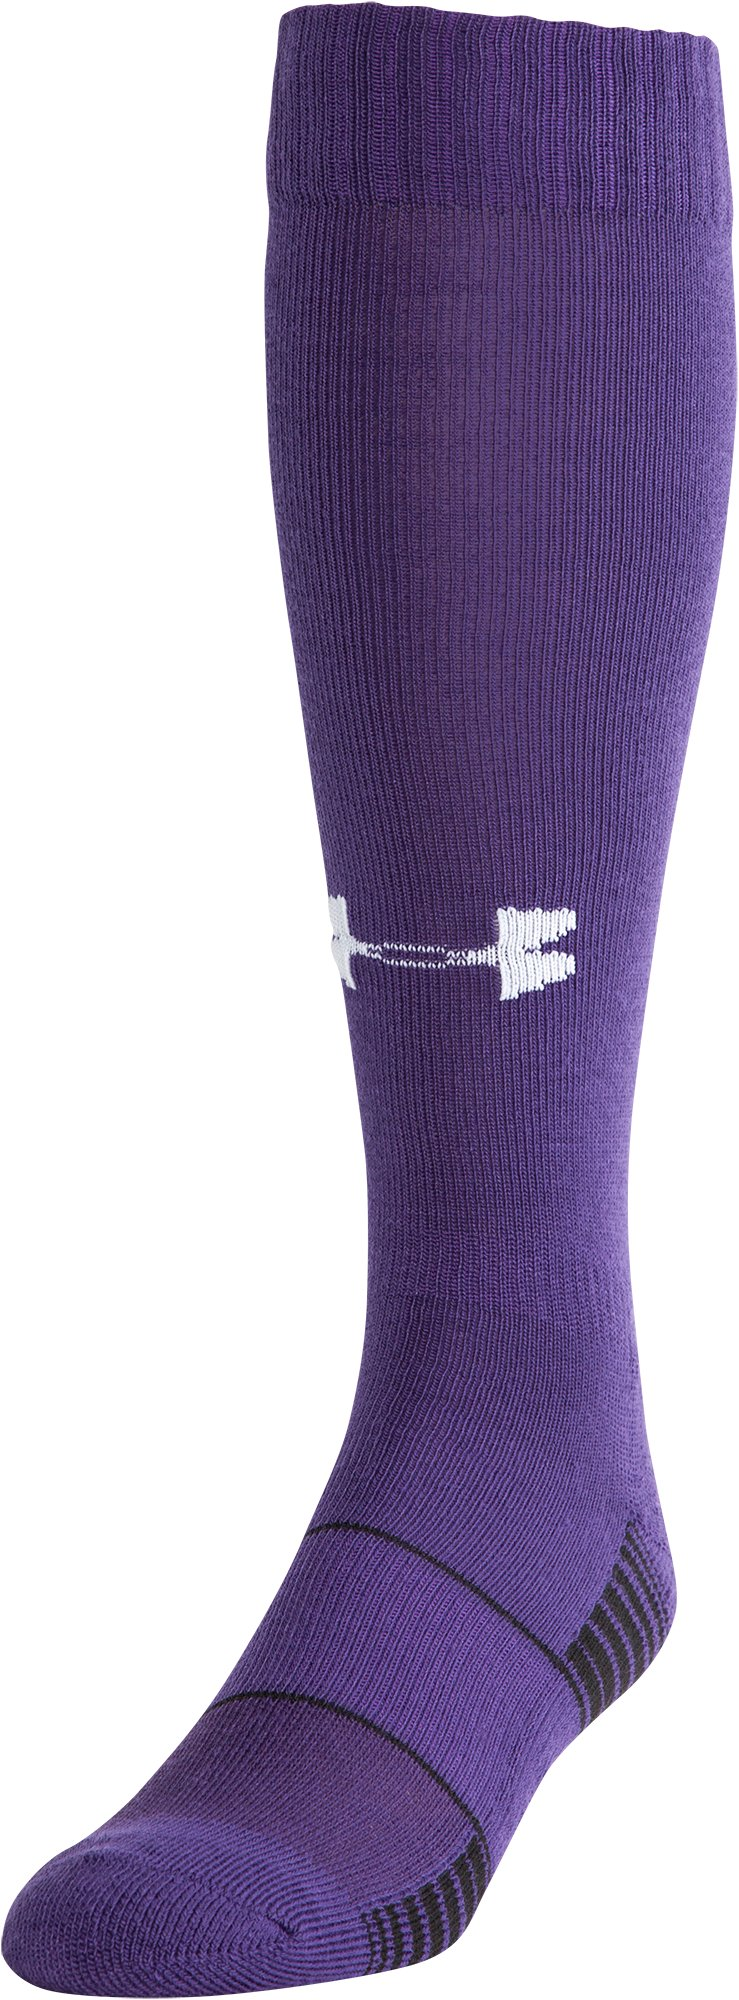 UA Over-The-Calf Team Socks, Purple